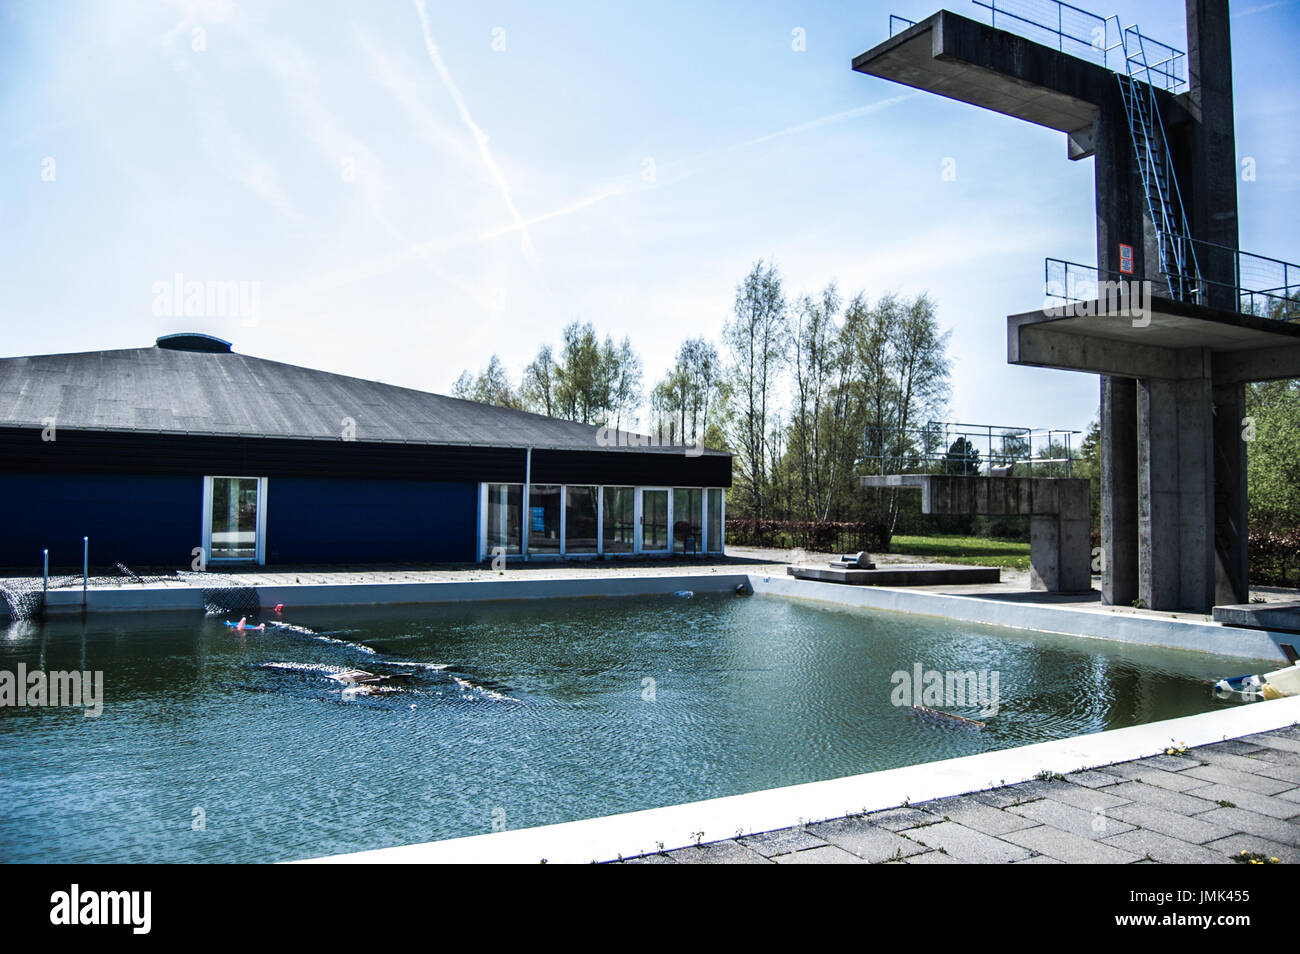 Abandoned Outdoor Swimming Pool With Jumping Platform Stock Photo Alamy